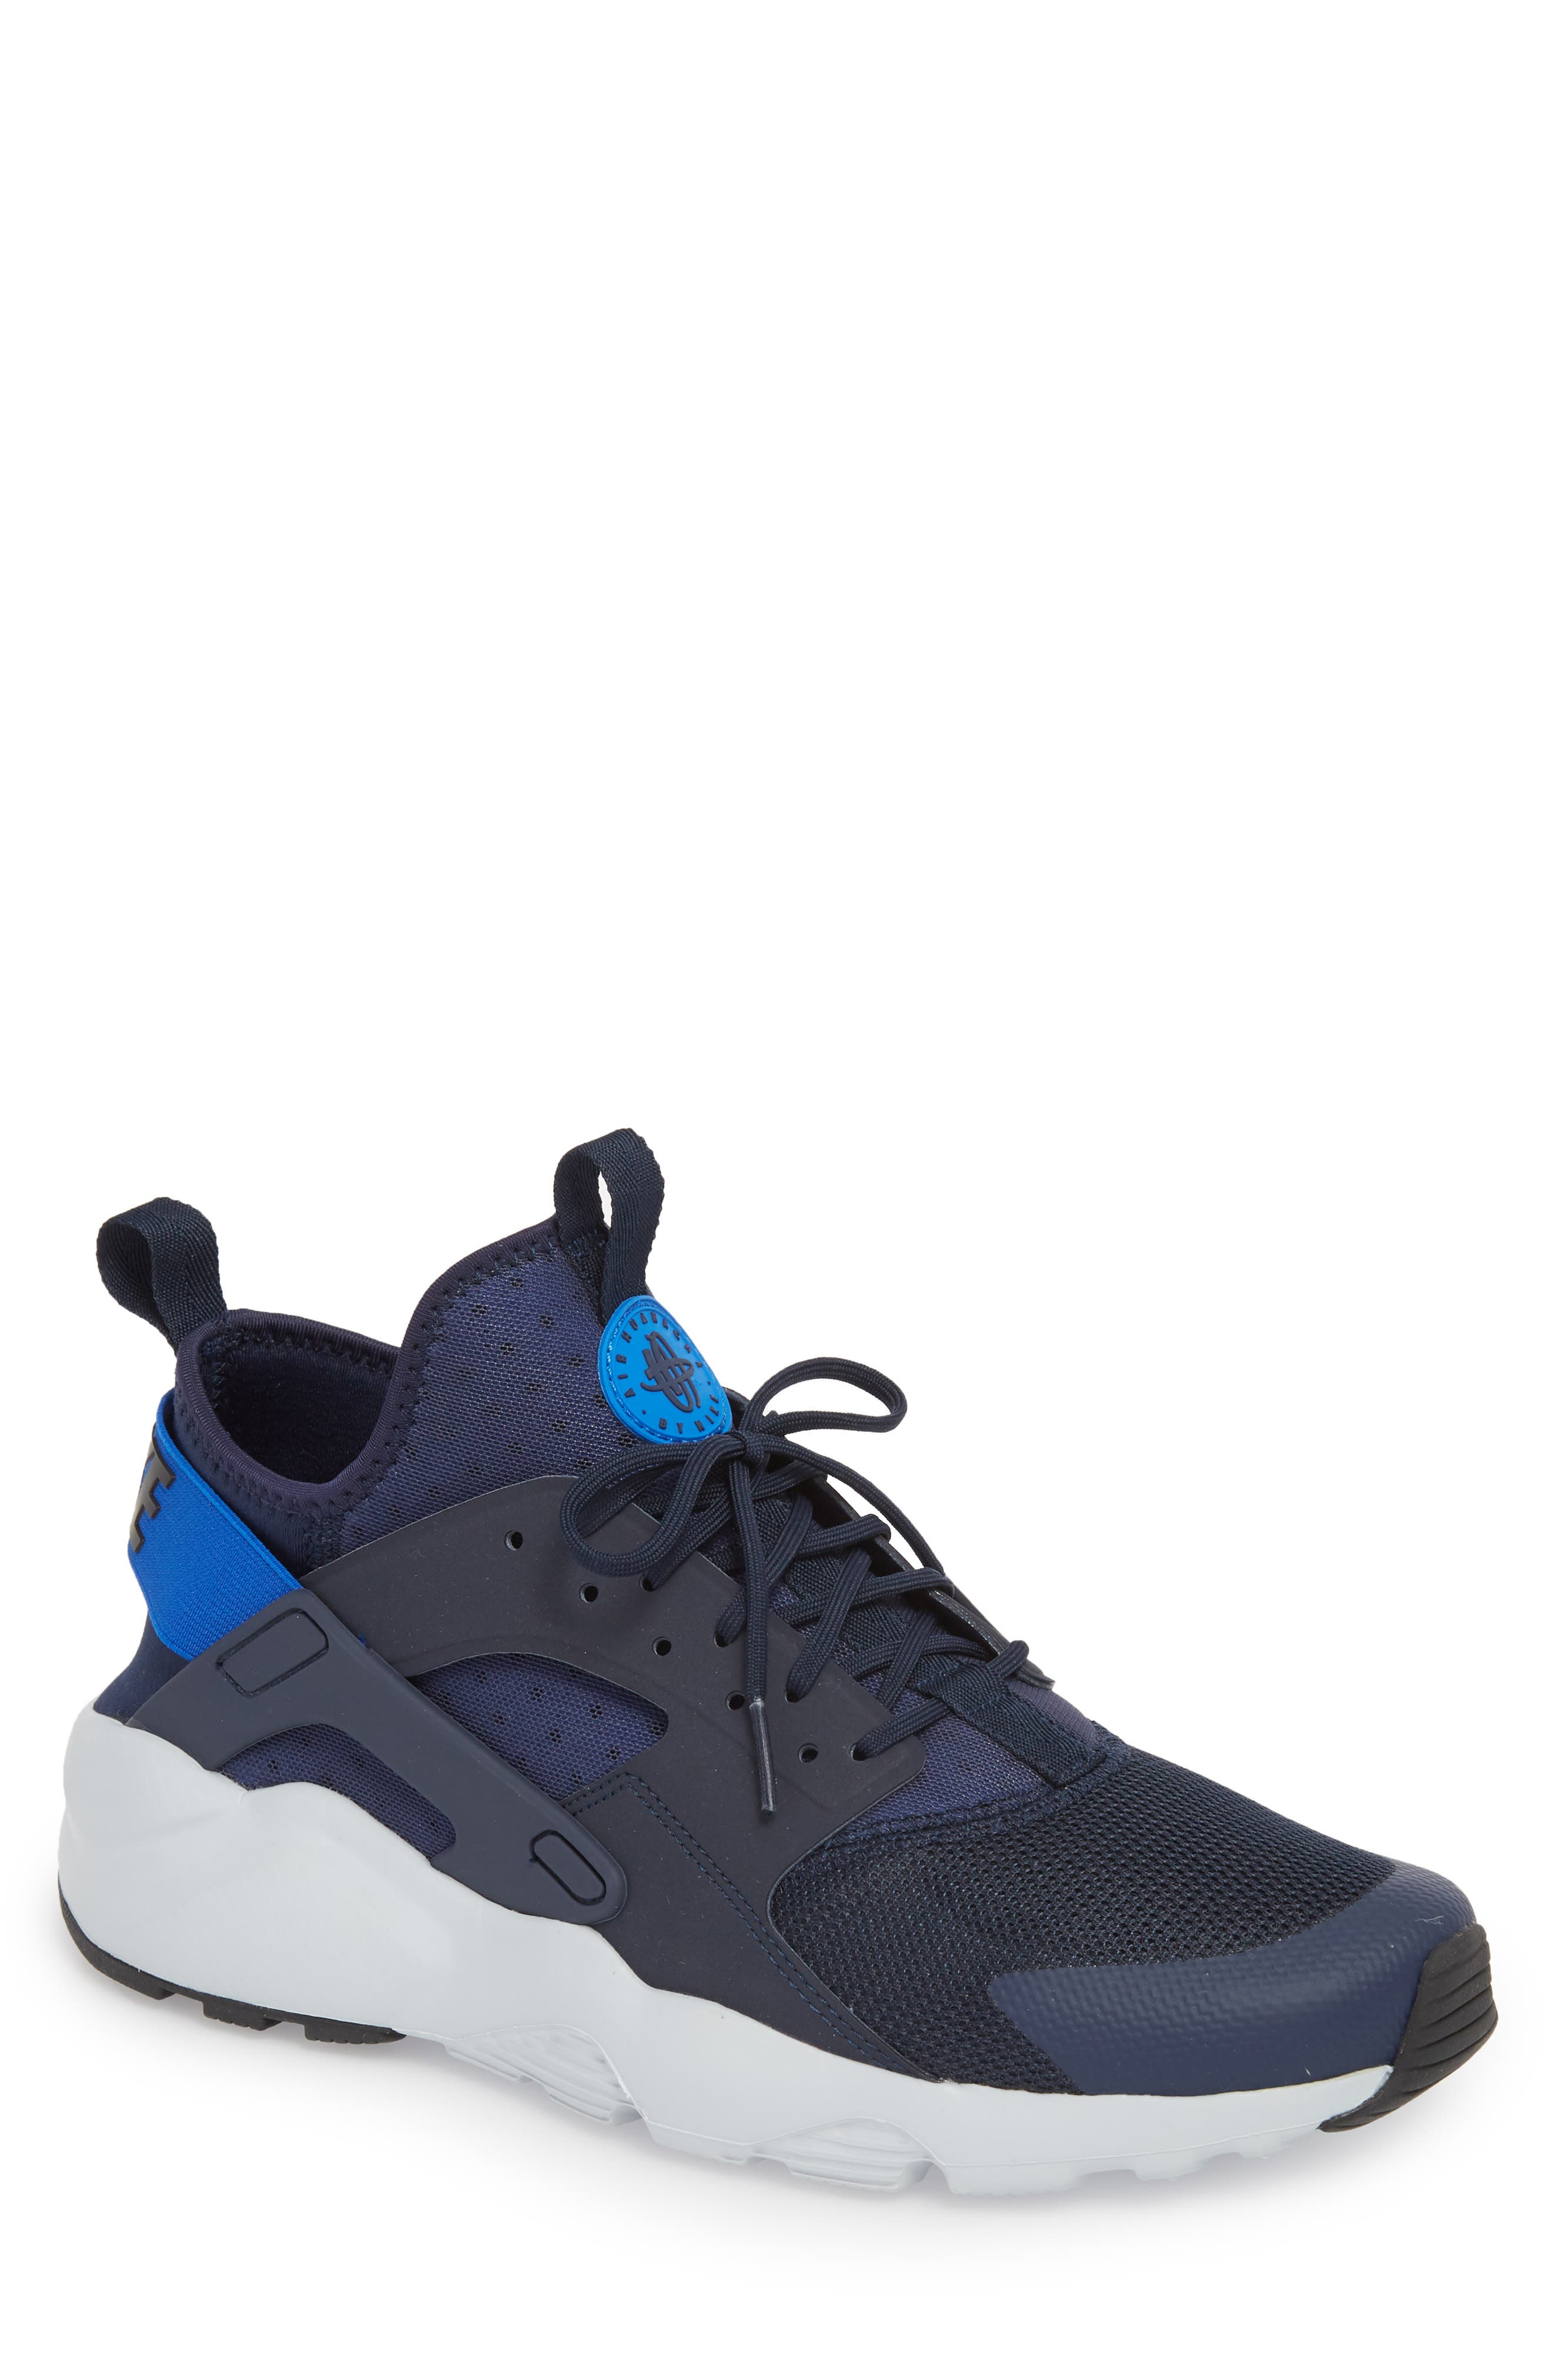 Air Huarache Run Ultra Sneaker,                         Main,                         color, 412